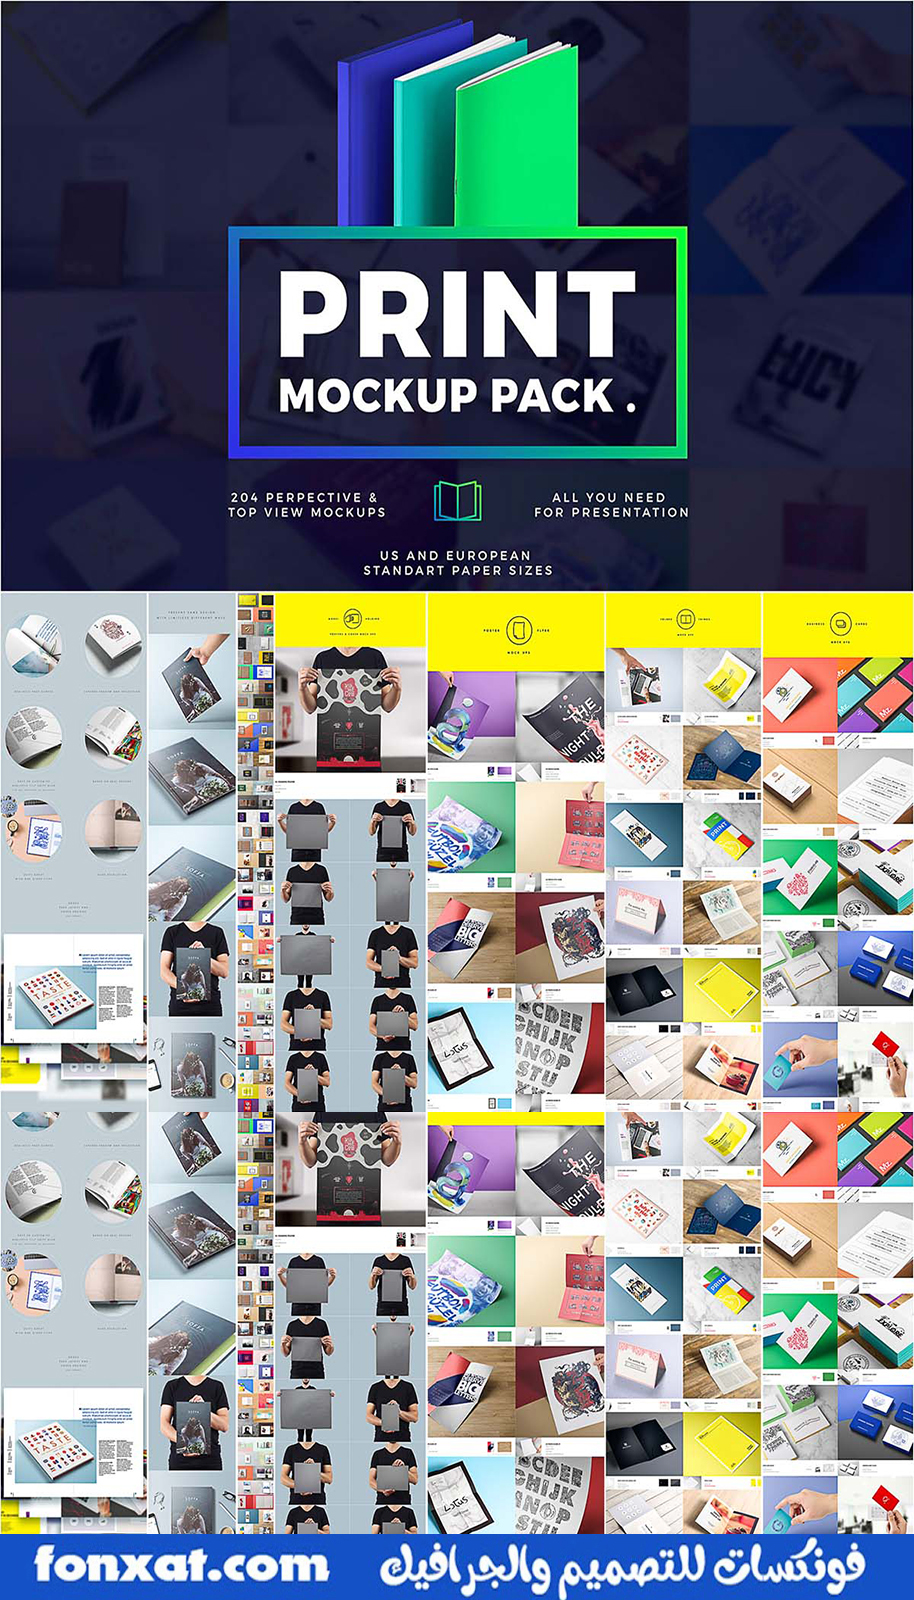 A large package of mockup files with a variety of magazines and designs